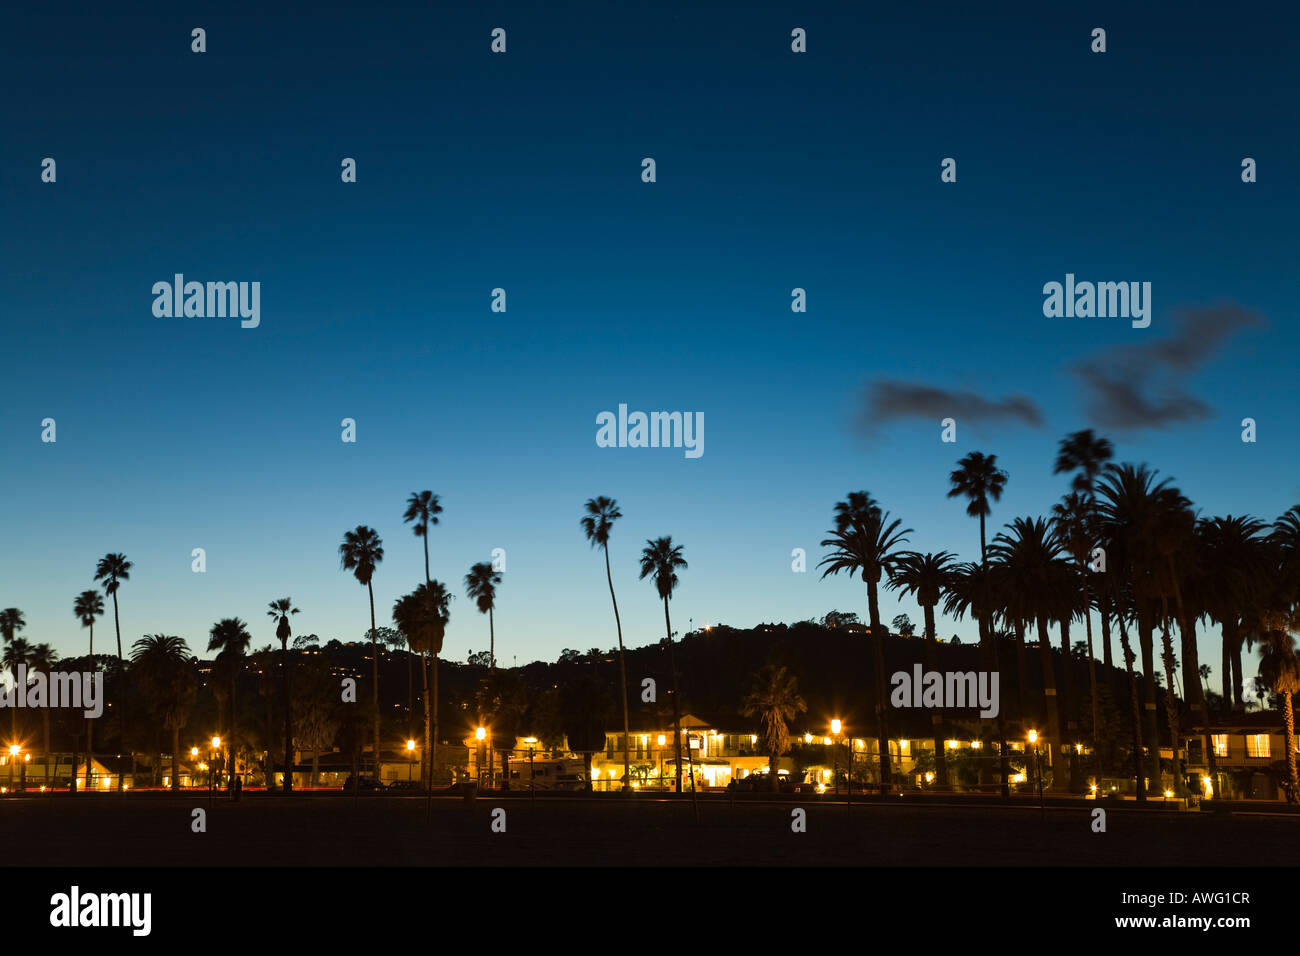 CALIFORNIA Santa Barbara Lights in hotel buildings on Cabrillo Boulevard at dusk palm trees and mountain - Stock Image